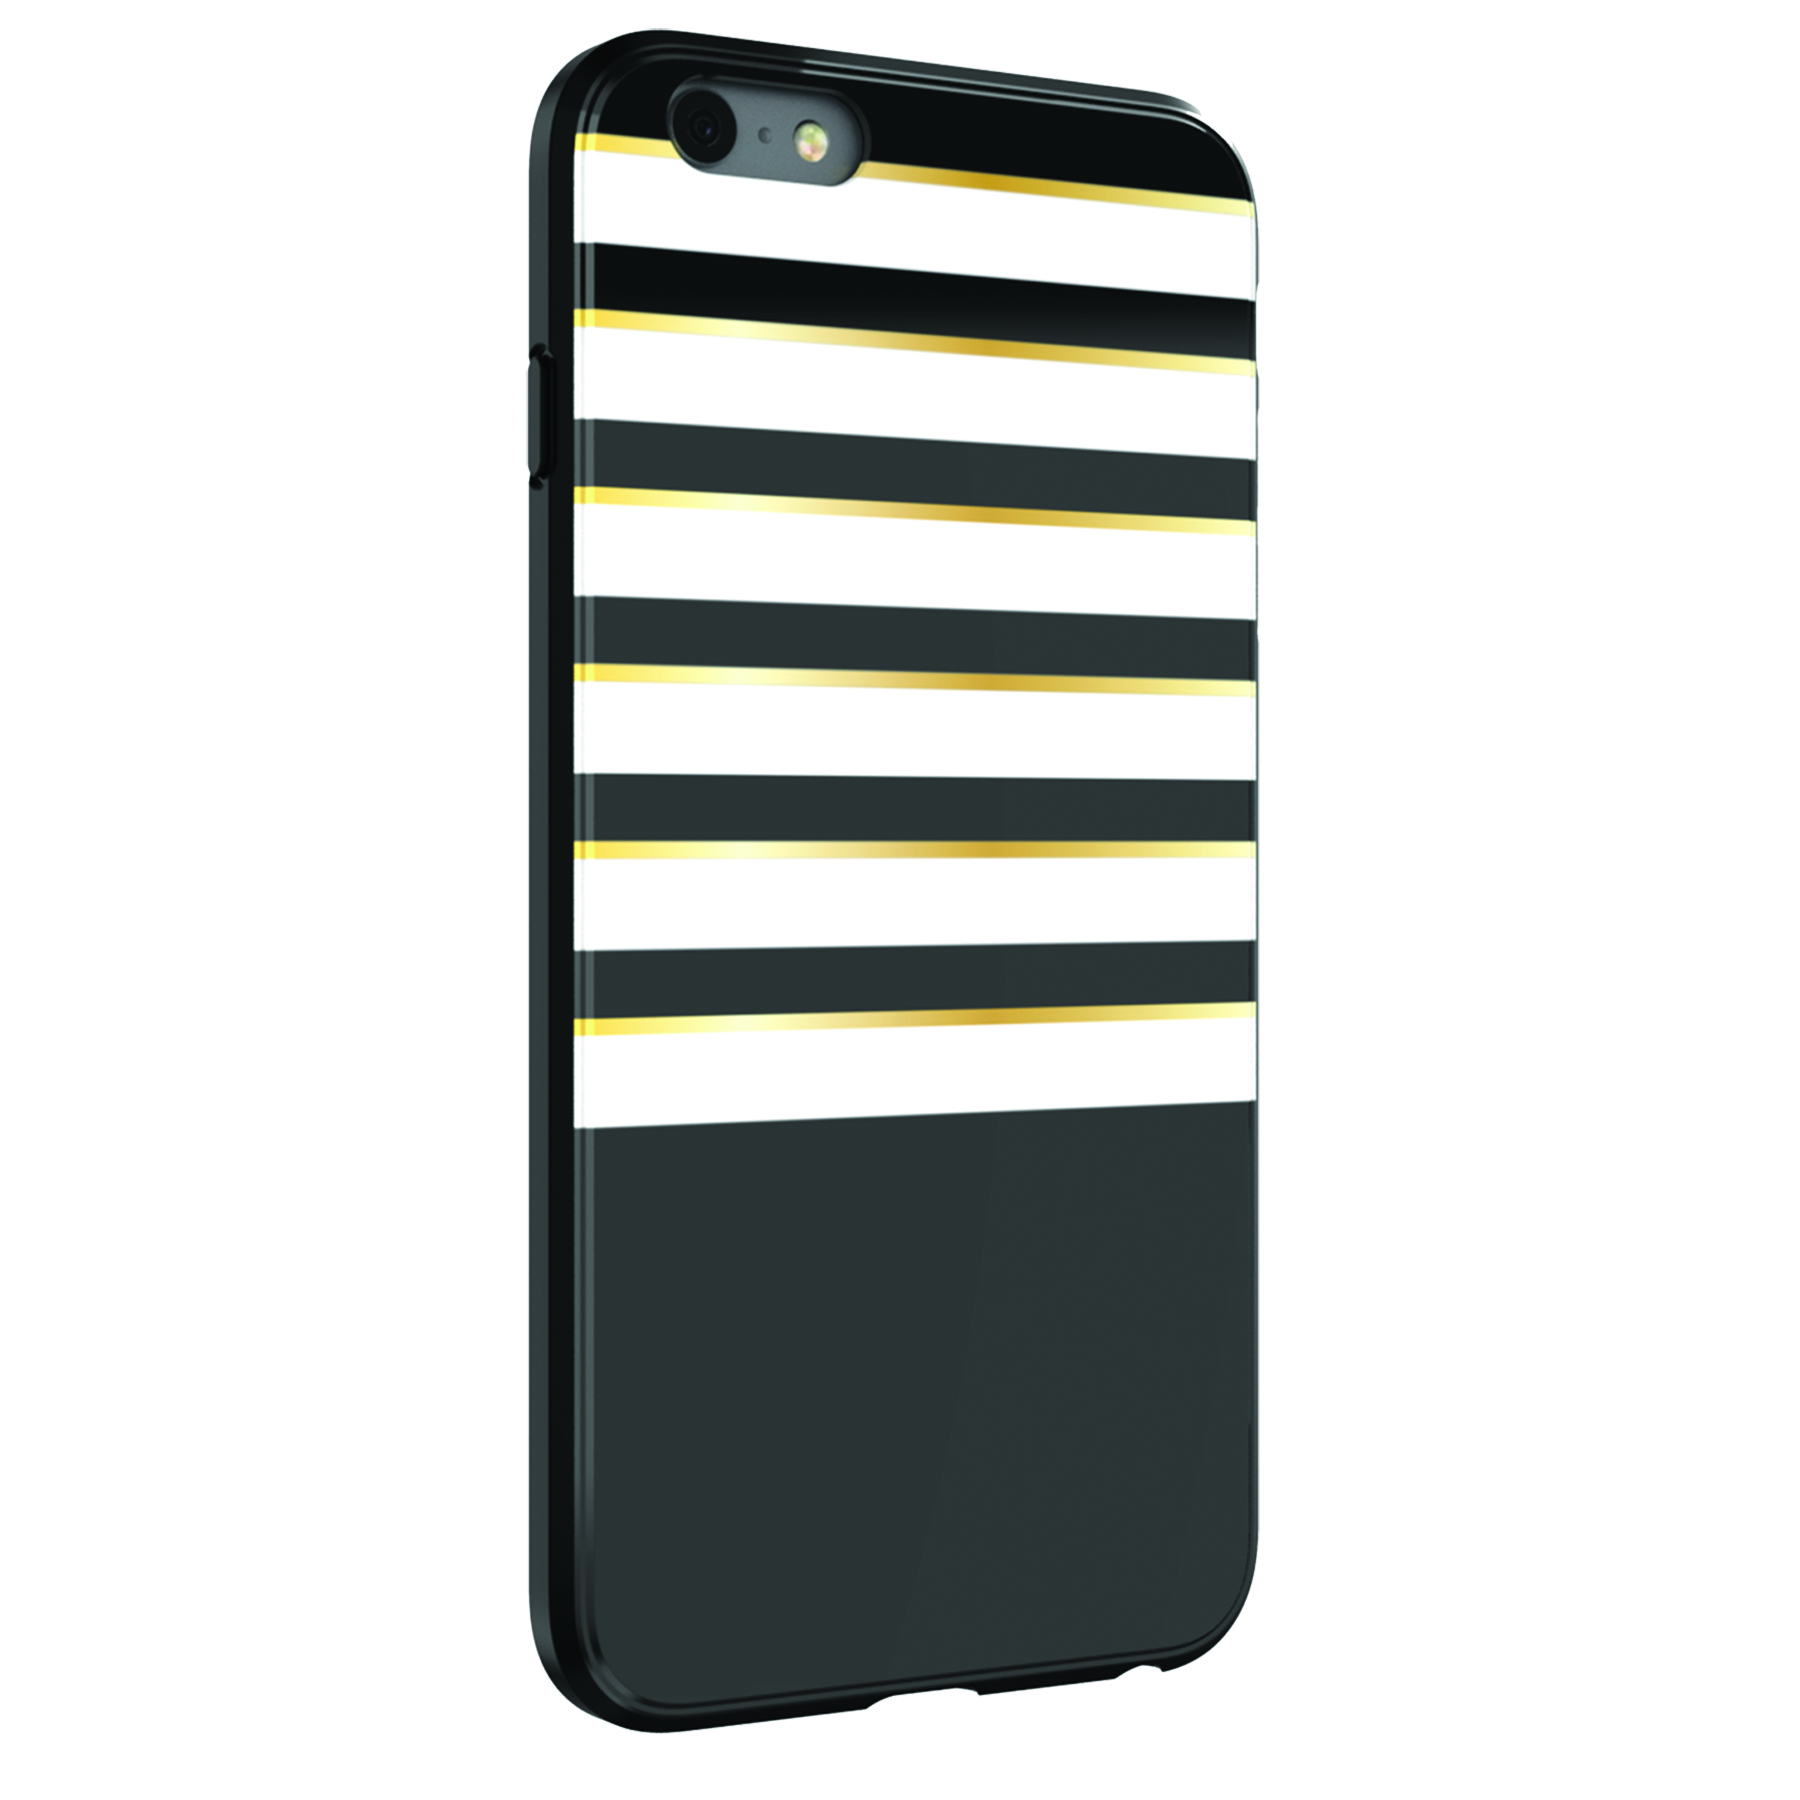 iphone 6 white and gold. onn black, white and gold stripes case for iphone 6 plus/iphone 6s plus iphone g